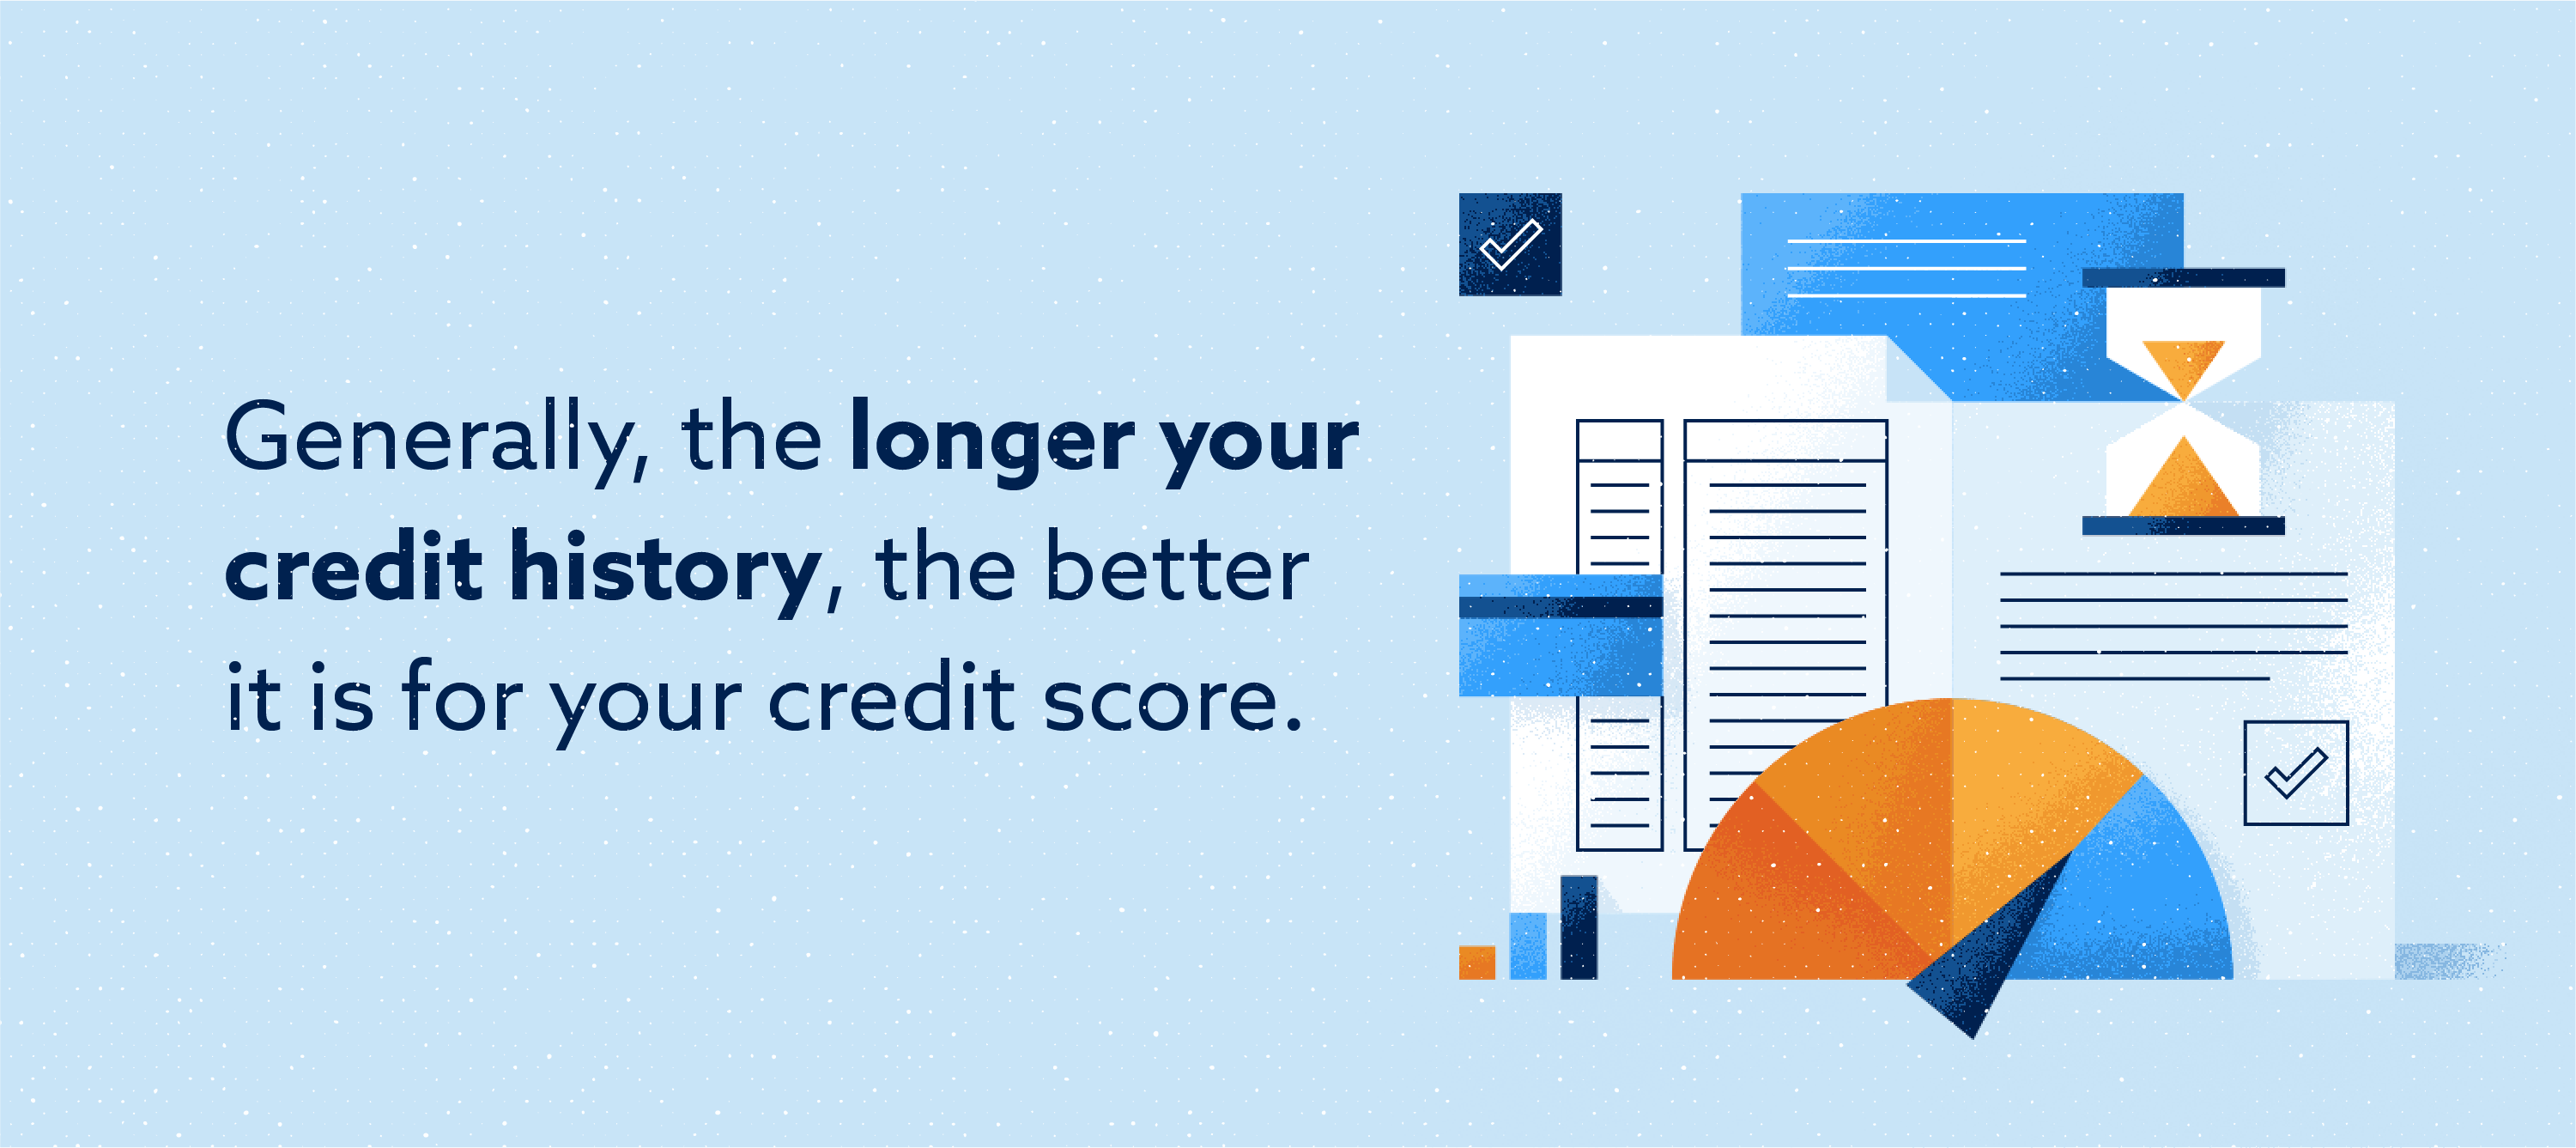 The longer your credit history, the better it is for your credit score Image